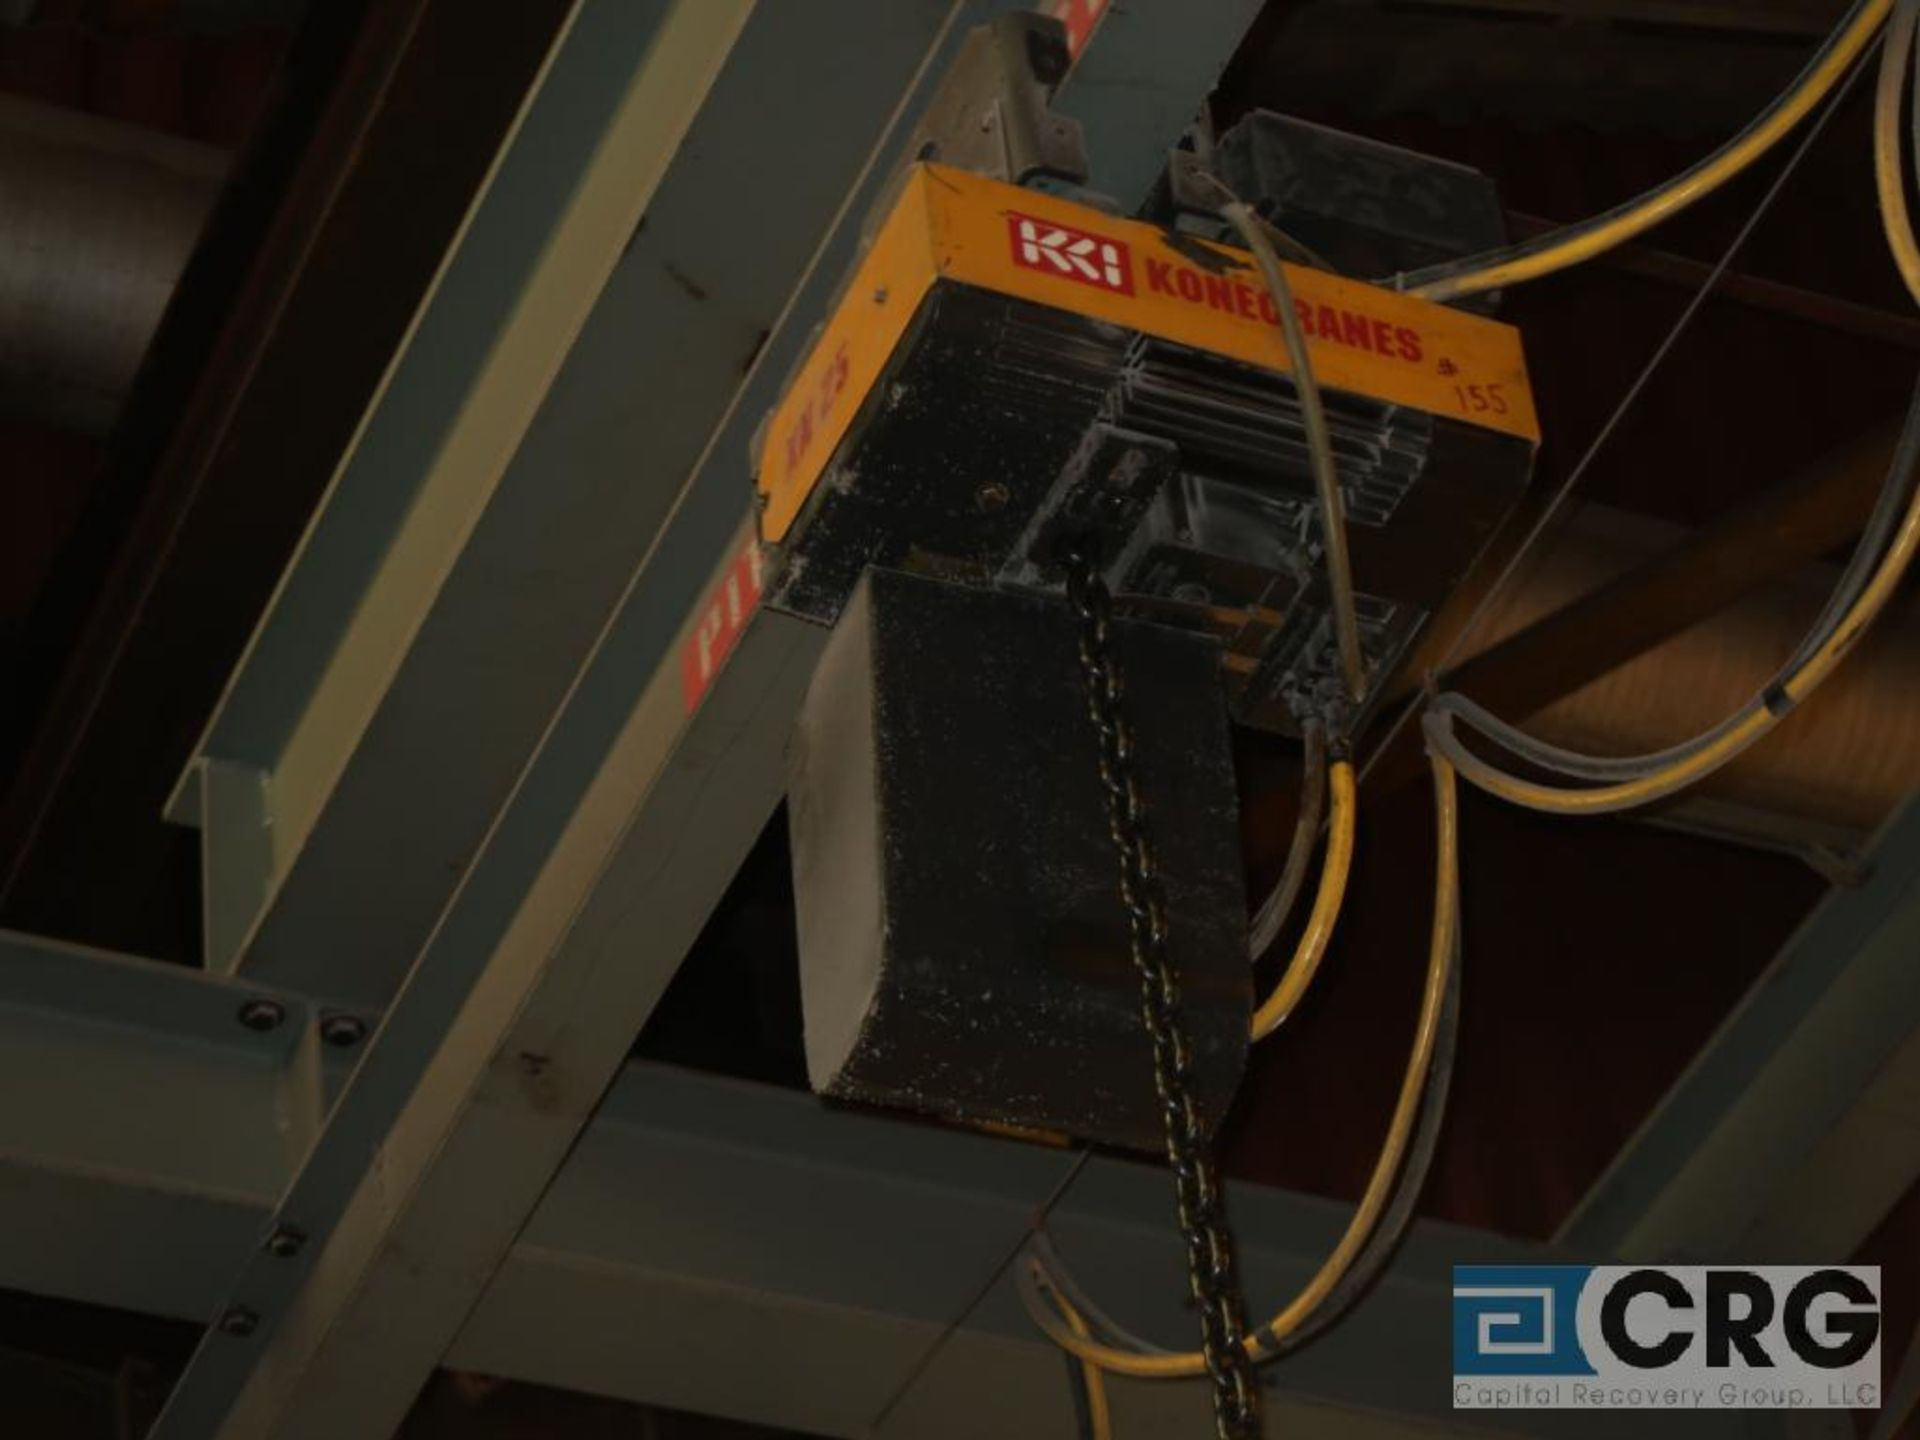 Konecranes XN25 electric hoist, 3 ton cap., hoist only, no beam-LATE DELIVERY (Located on Level - Image 2 of 12